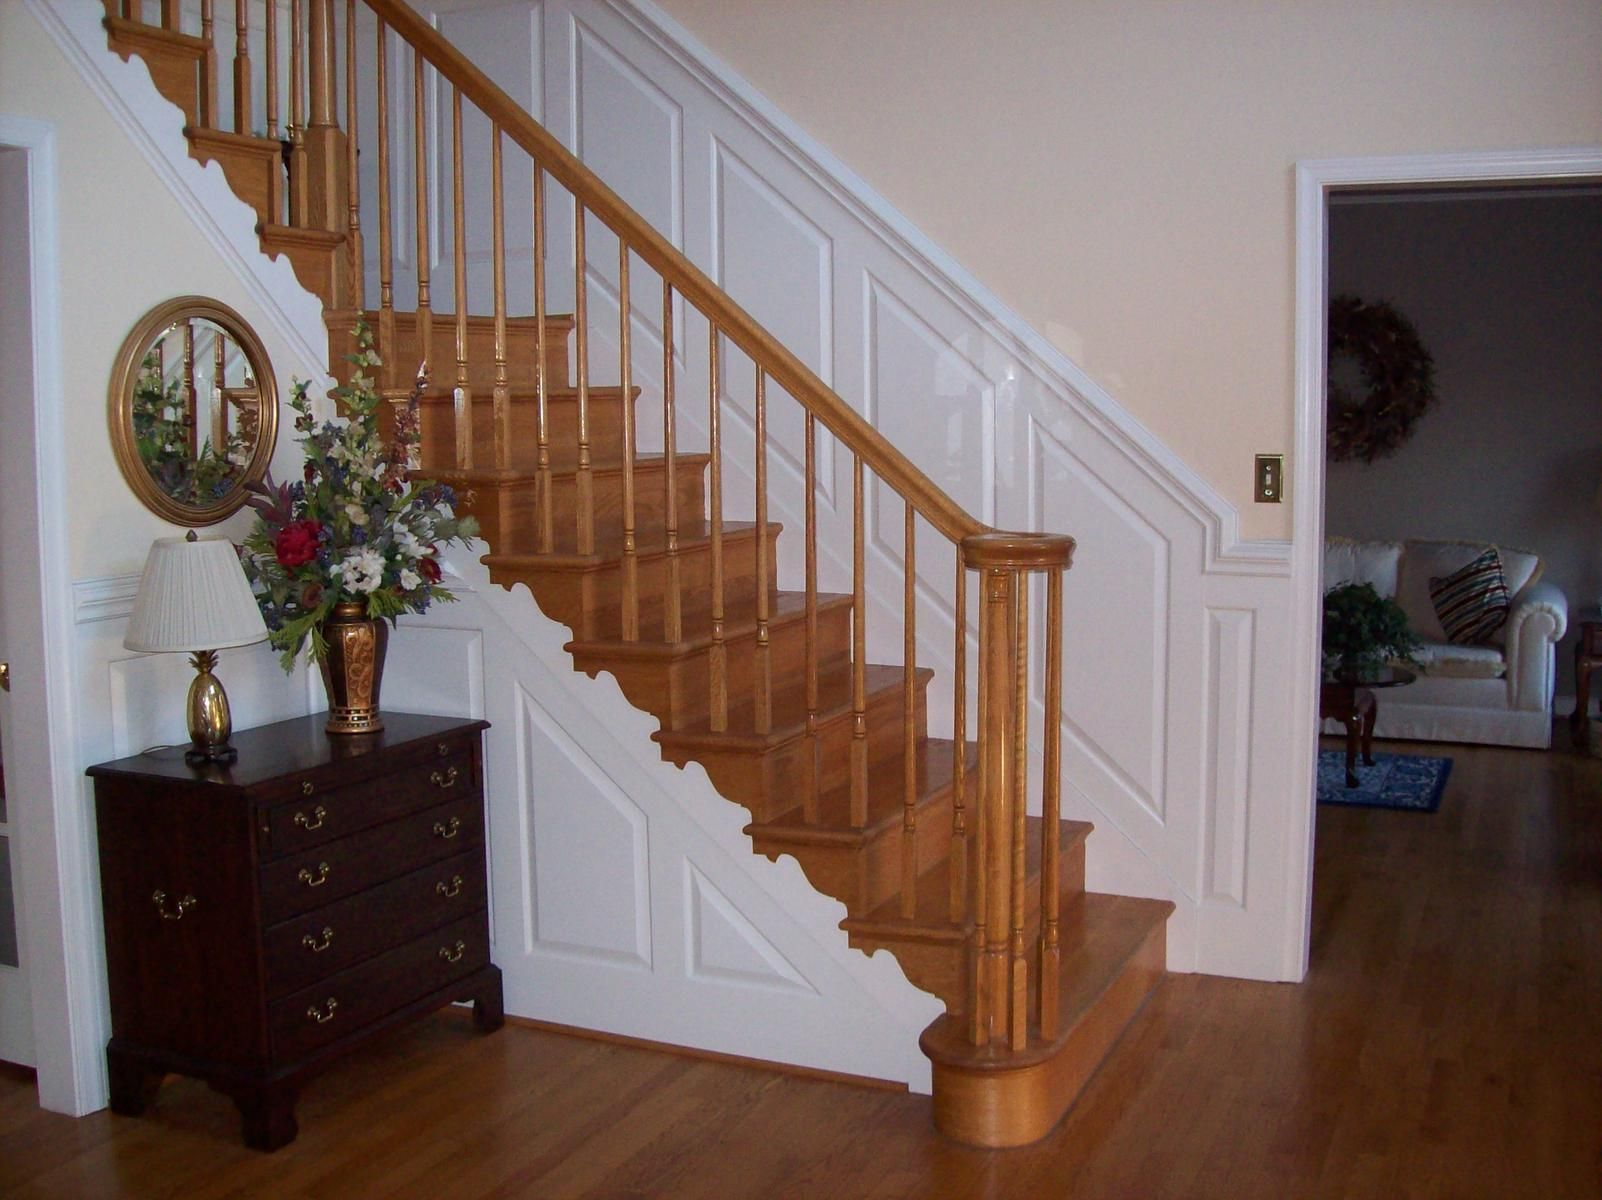 Custom made stair wainscot by sdg home solutions for Custom stair